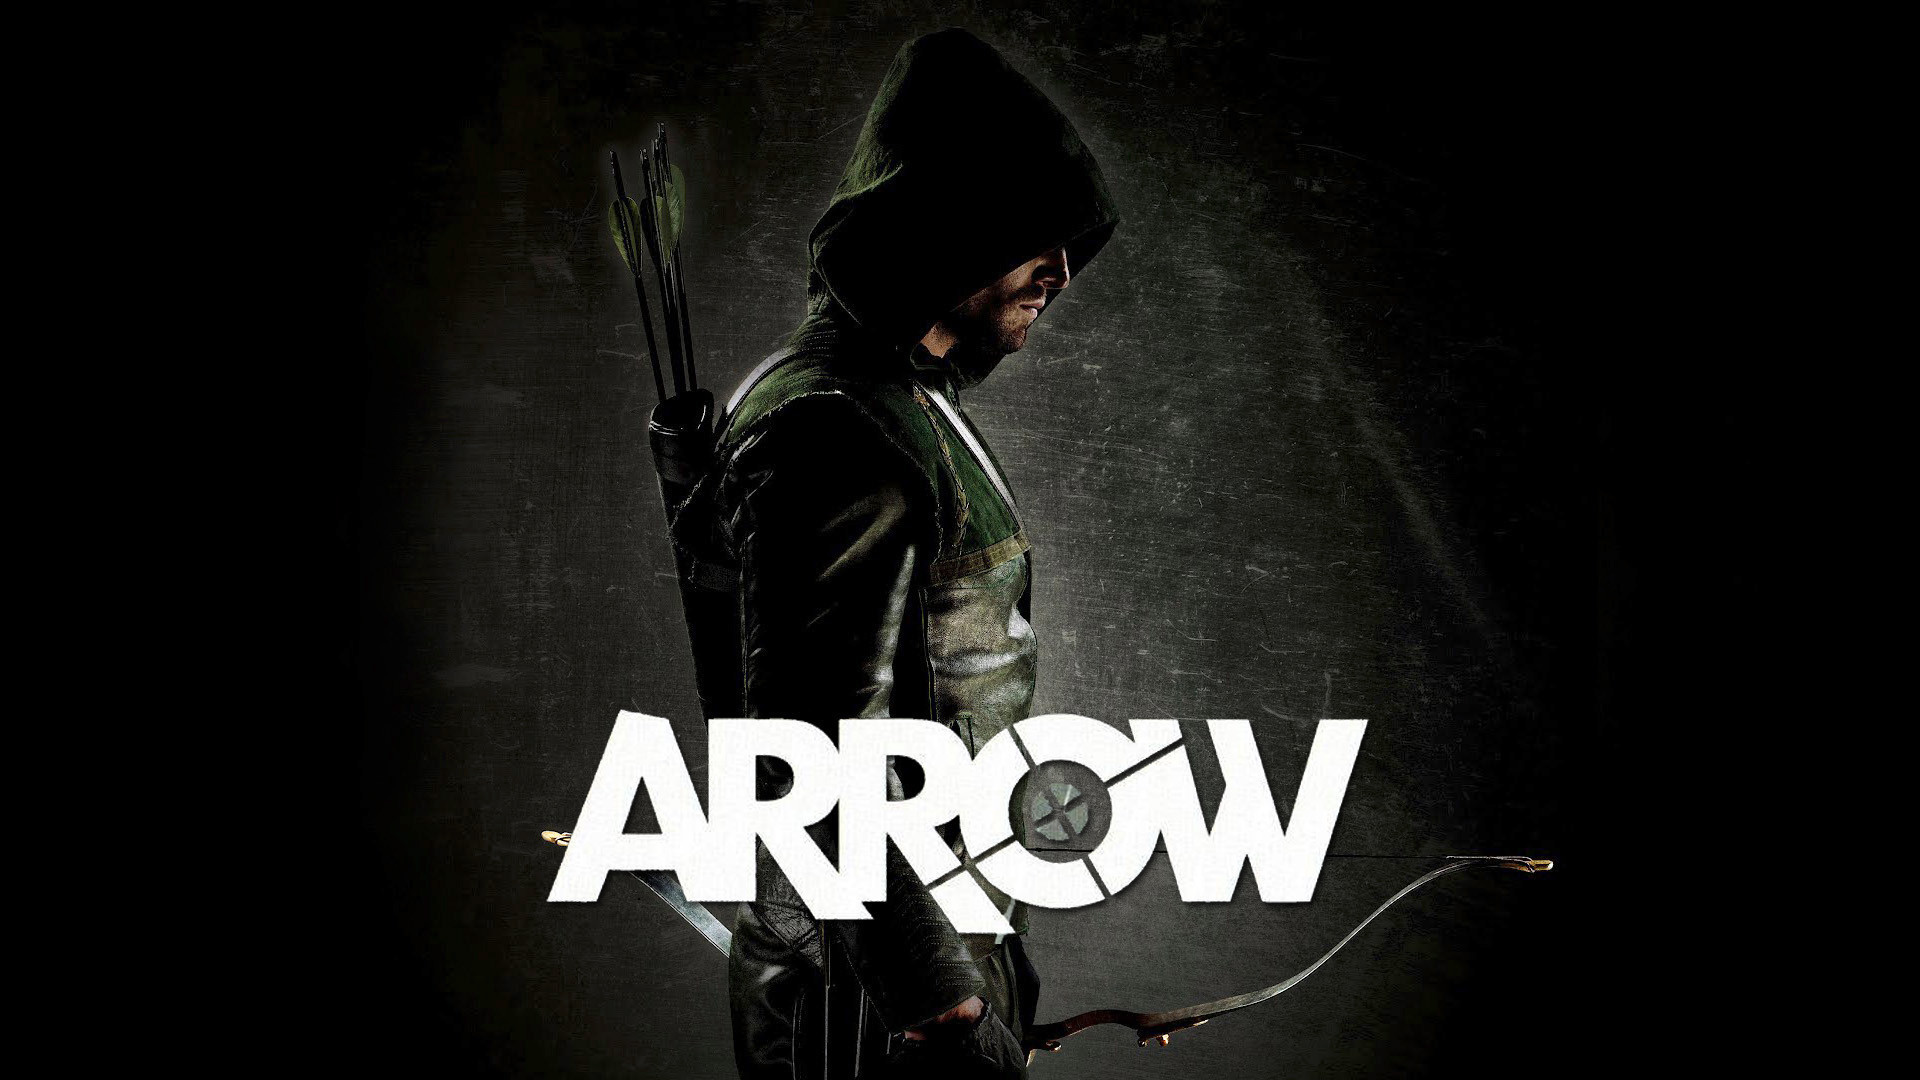 1920x1080 Arrow Wallpapers, Pictures, Images